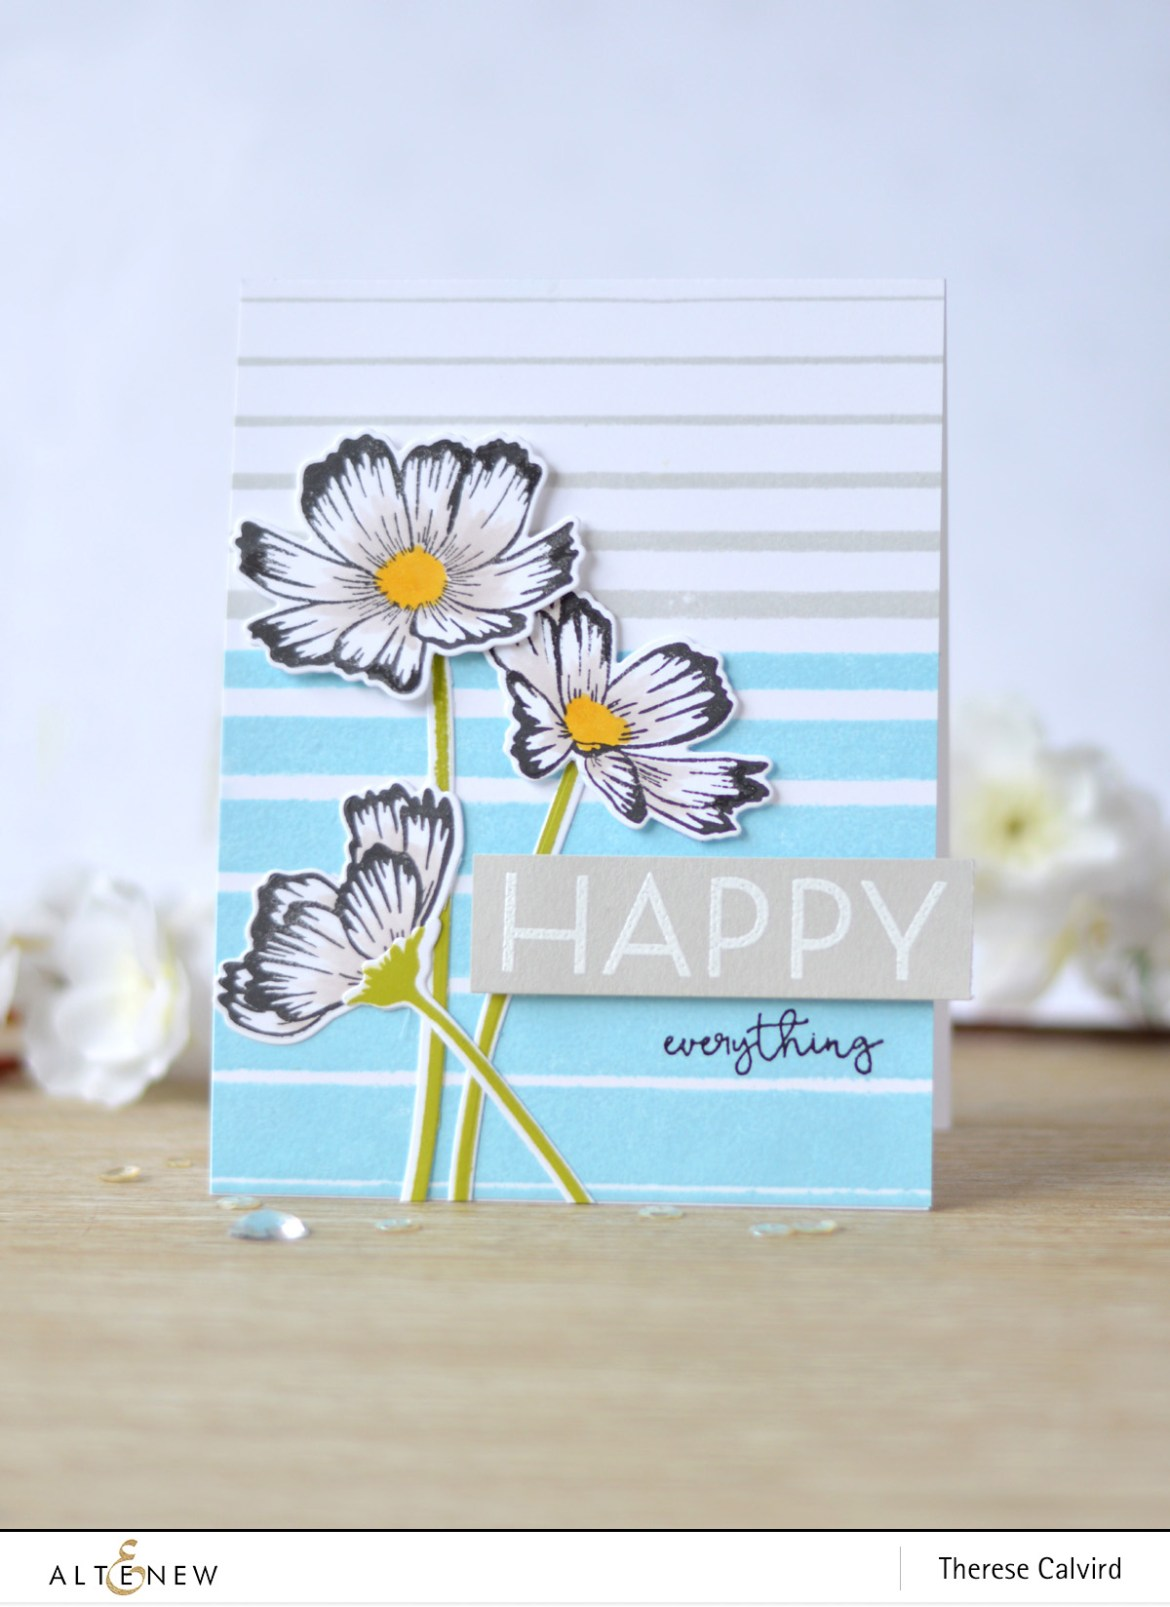 Altenew - Gradient Stripes - Stunning Cosmos - Therese Calvird (card video) 1 copy